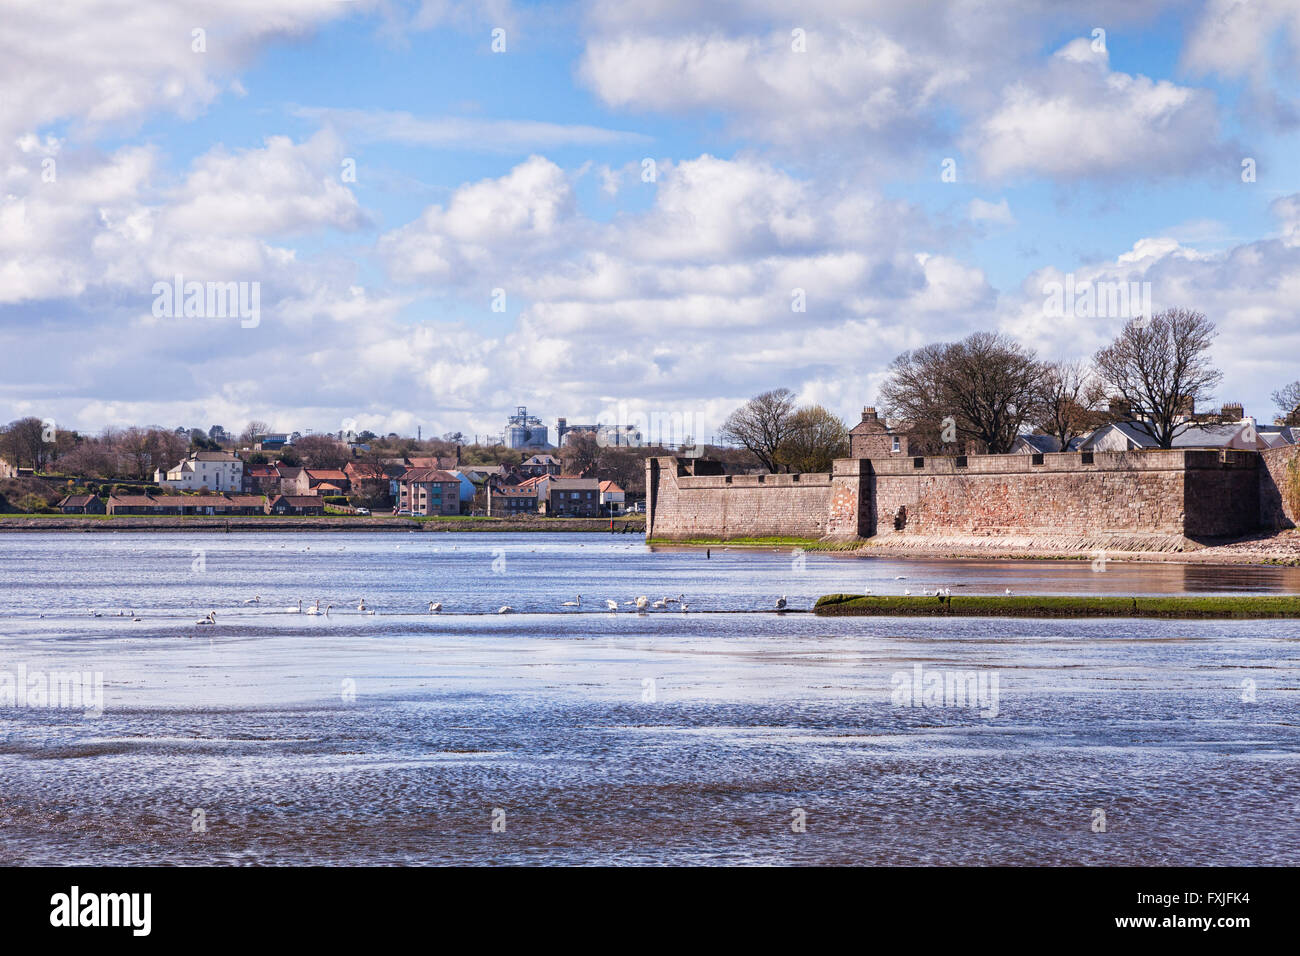 The River Tweed and the town walls of Berwick-upon-Tweed, Northumberland, England, UK - Stock Image